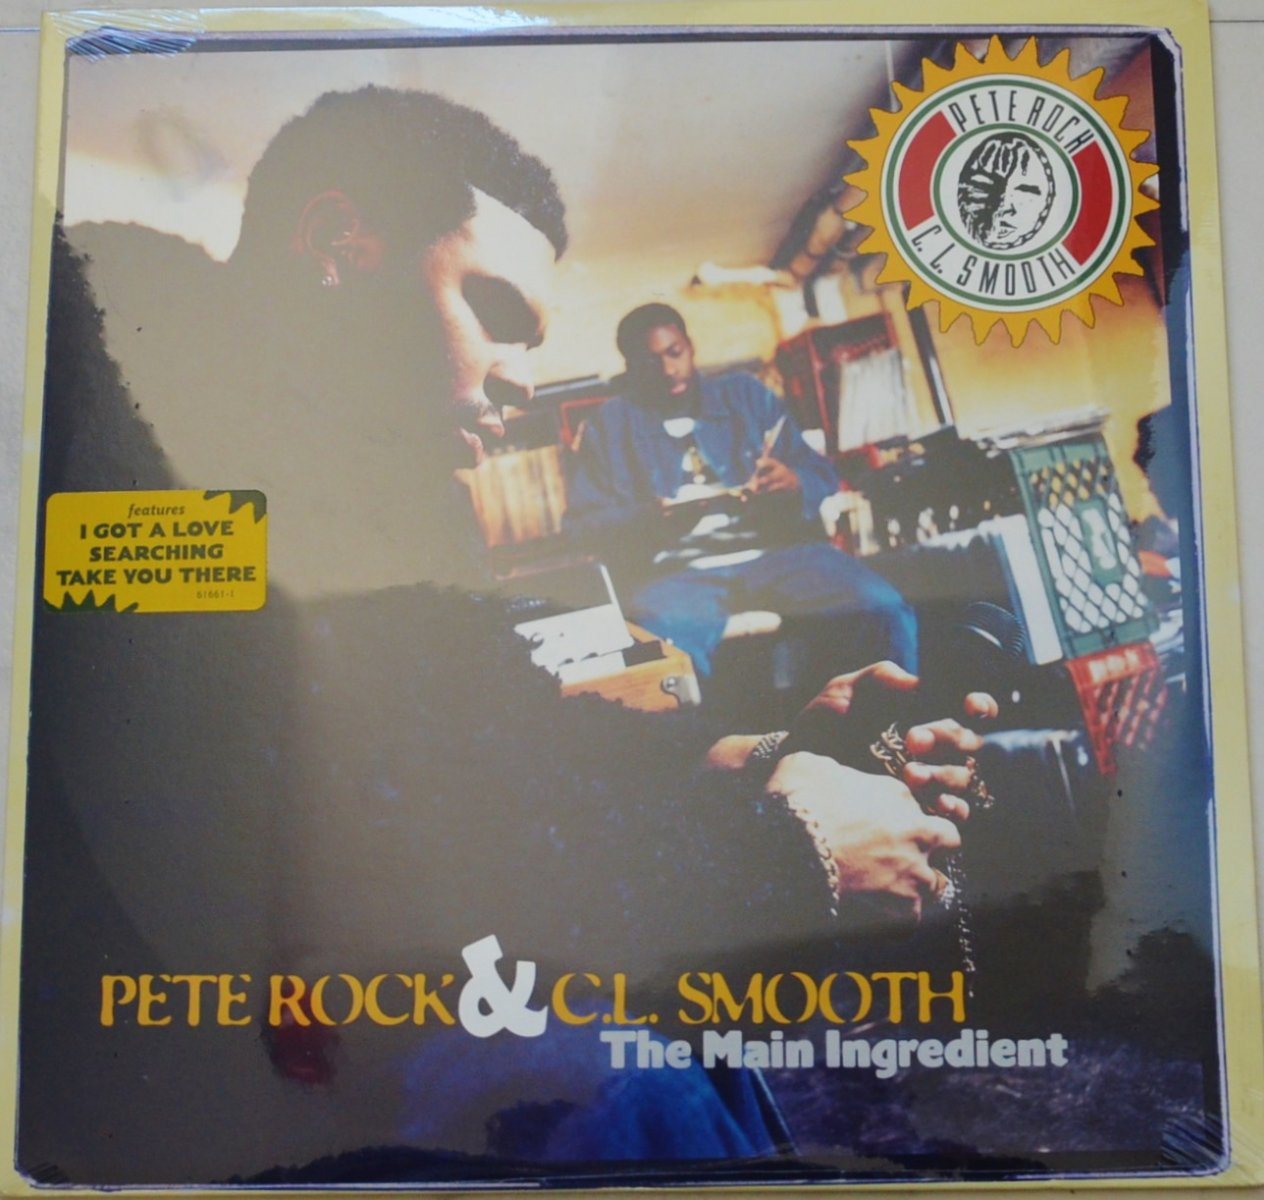 PETE ROCK & C.L.SMOOTH / THE MAIN INGREDIENT (LP)